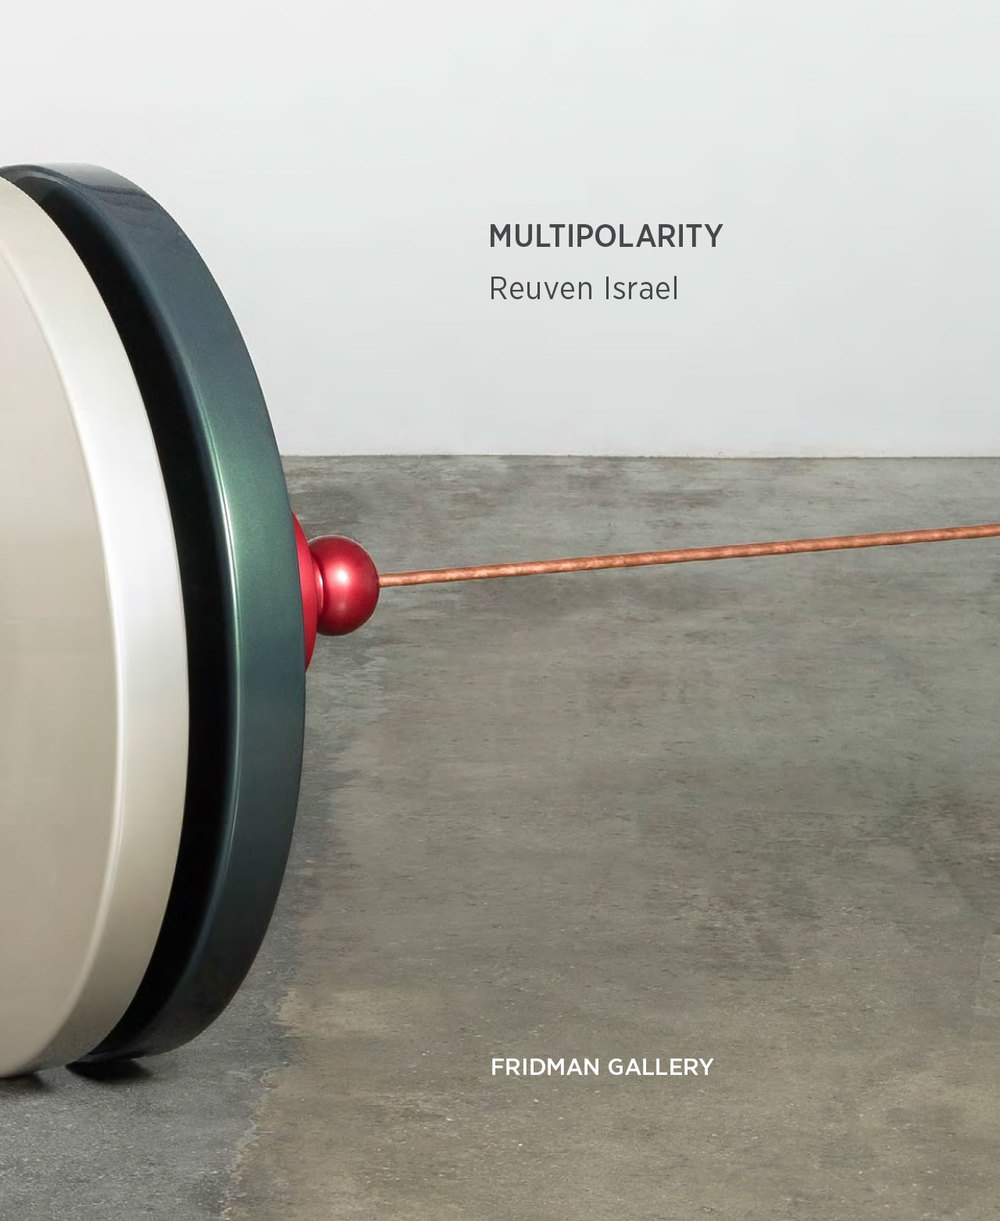 Reuven-Israel-Multipolarity-cover.jpg